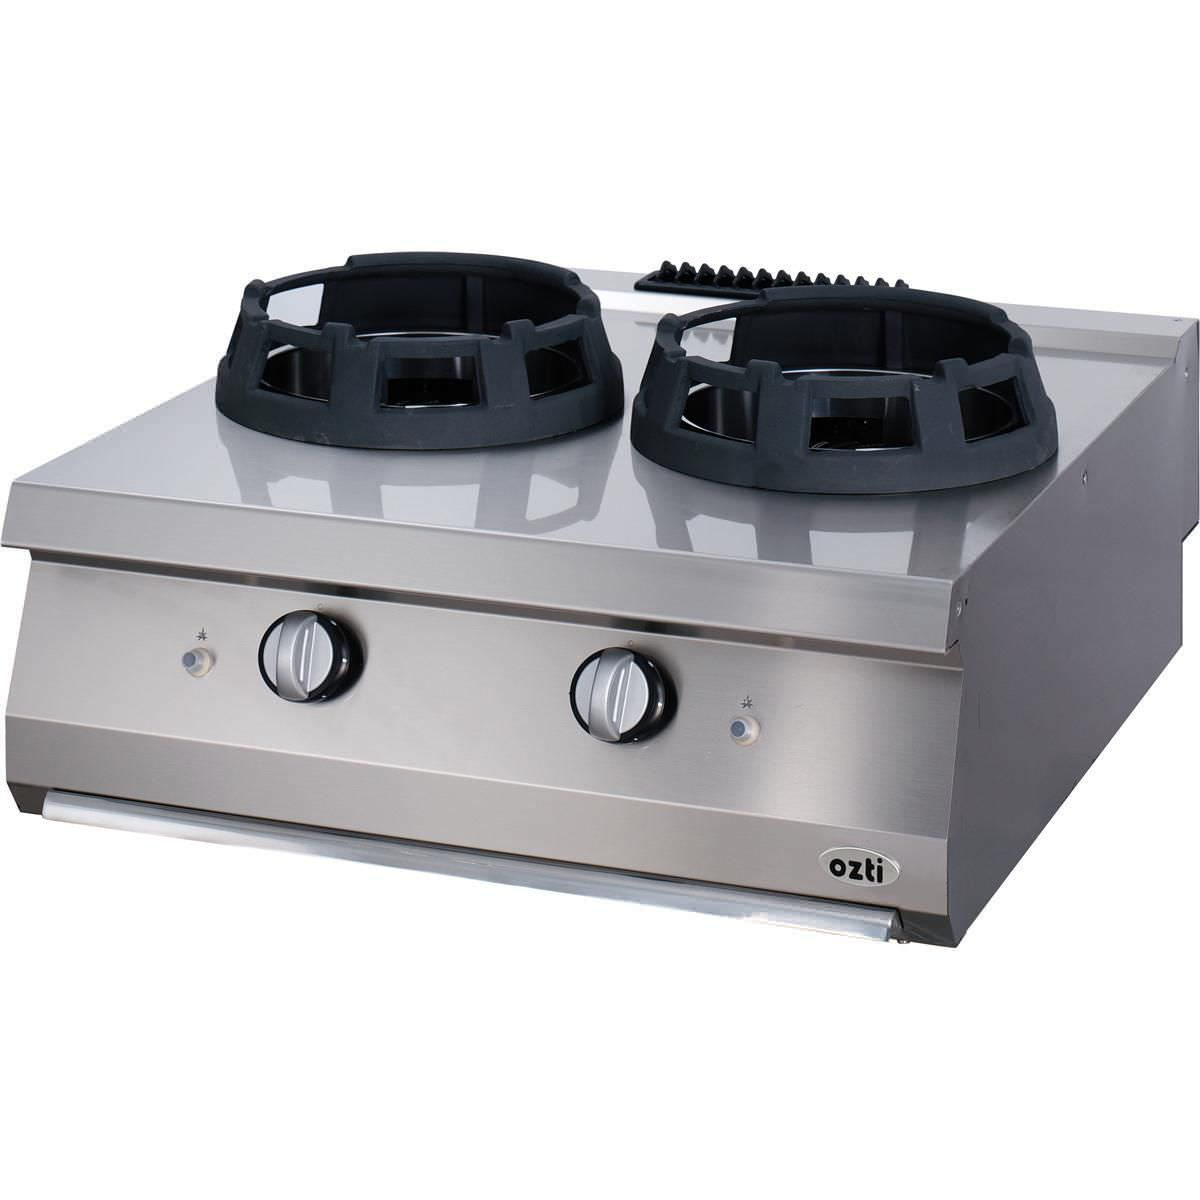 Gas cooktop / commercial / cast iron / wok - 700 : 7865.N1.80703 ...